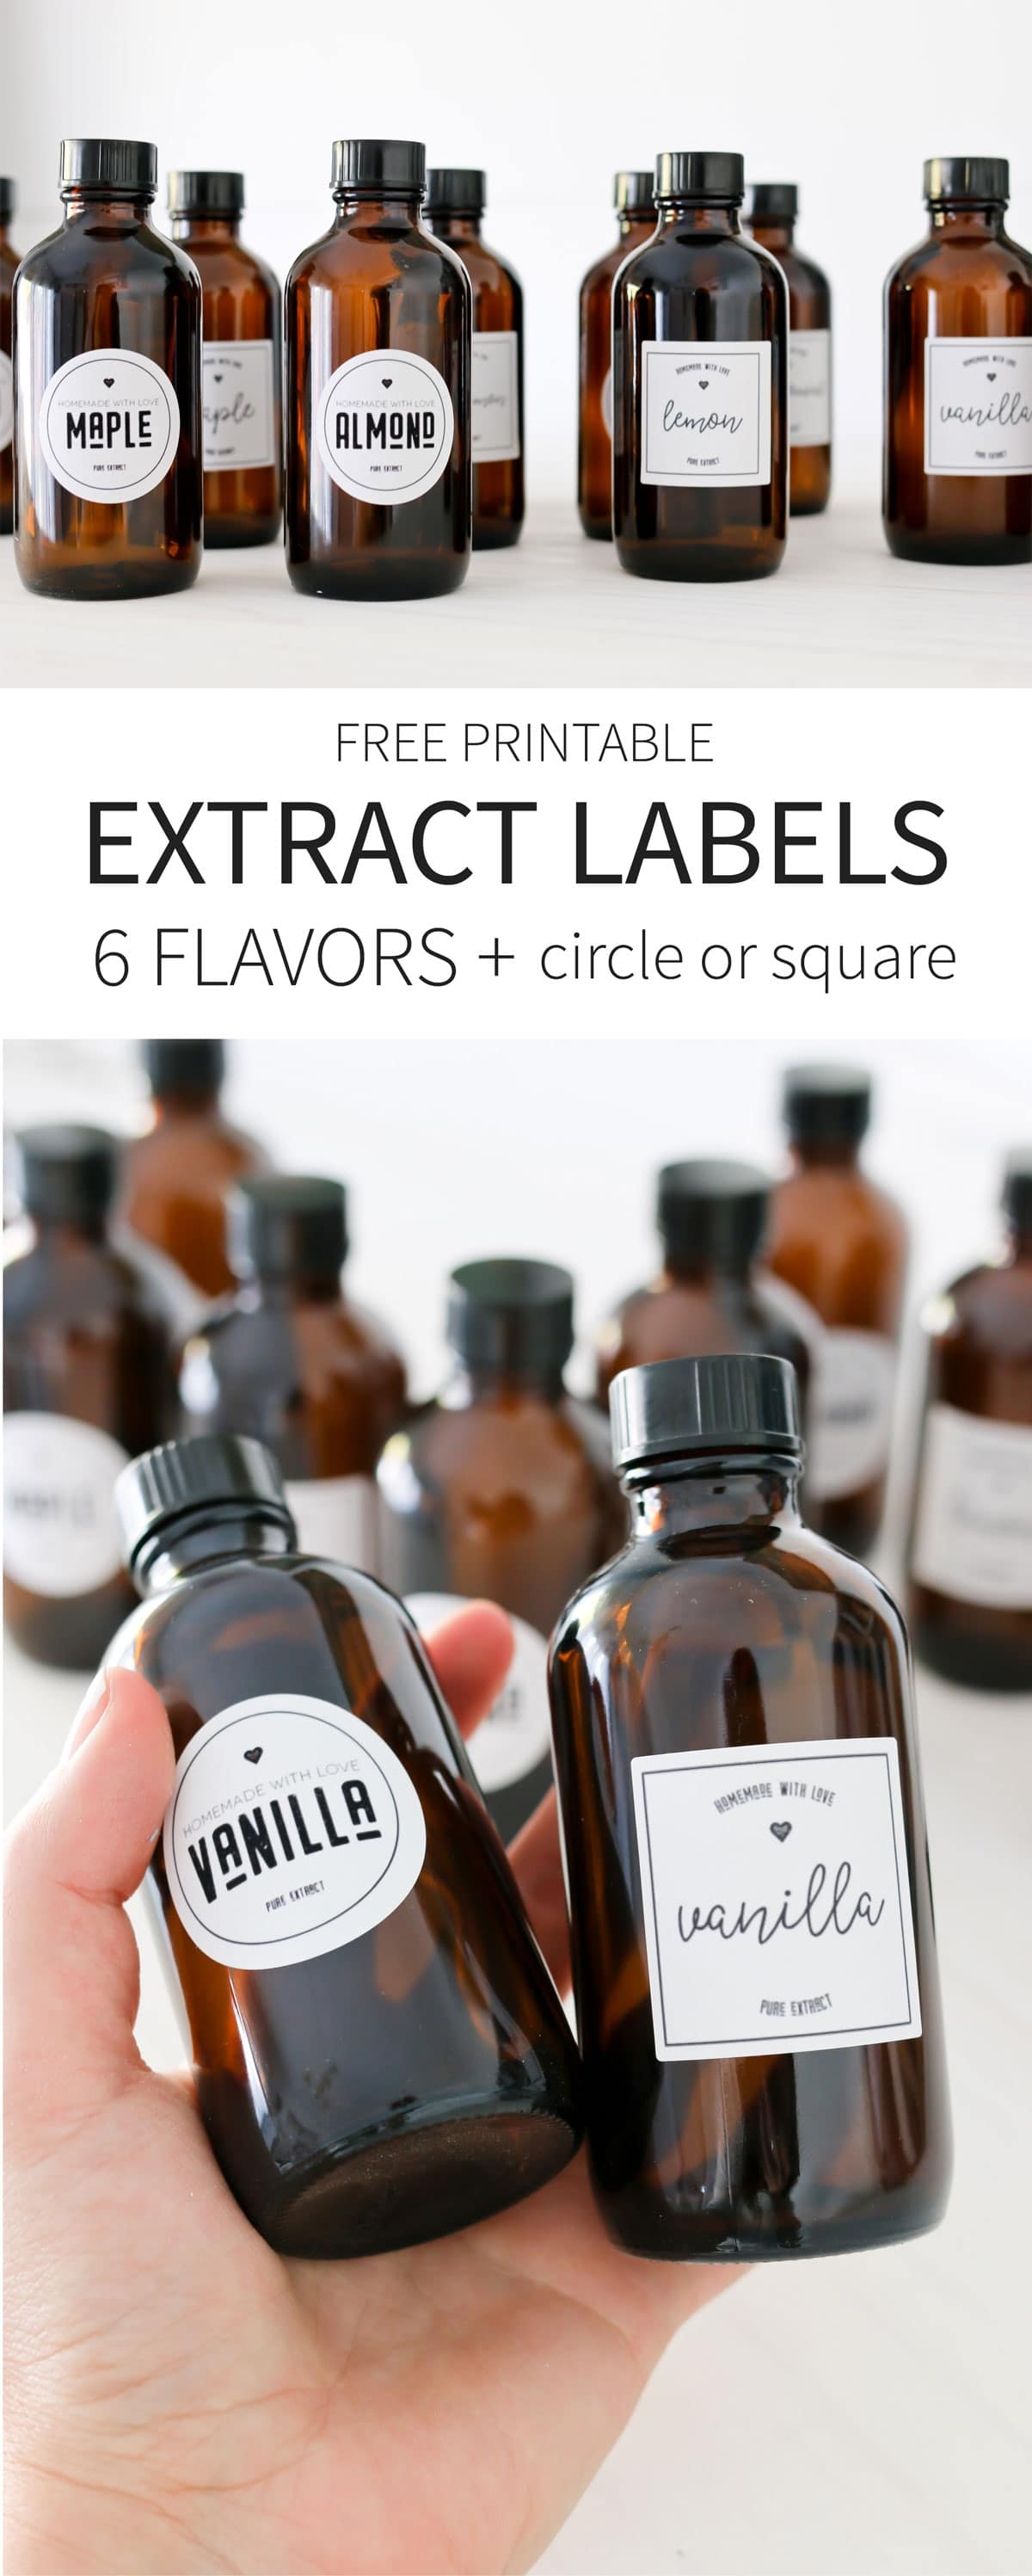 Free printable Vanilla Extract labels + 6 more extract flavors! Square or Circle available.